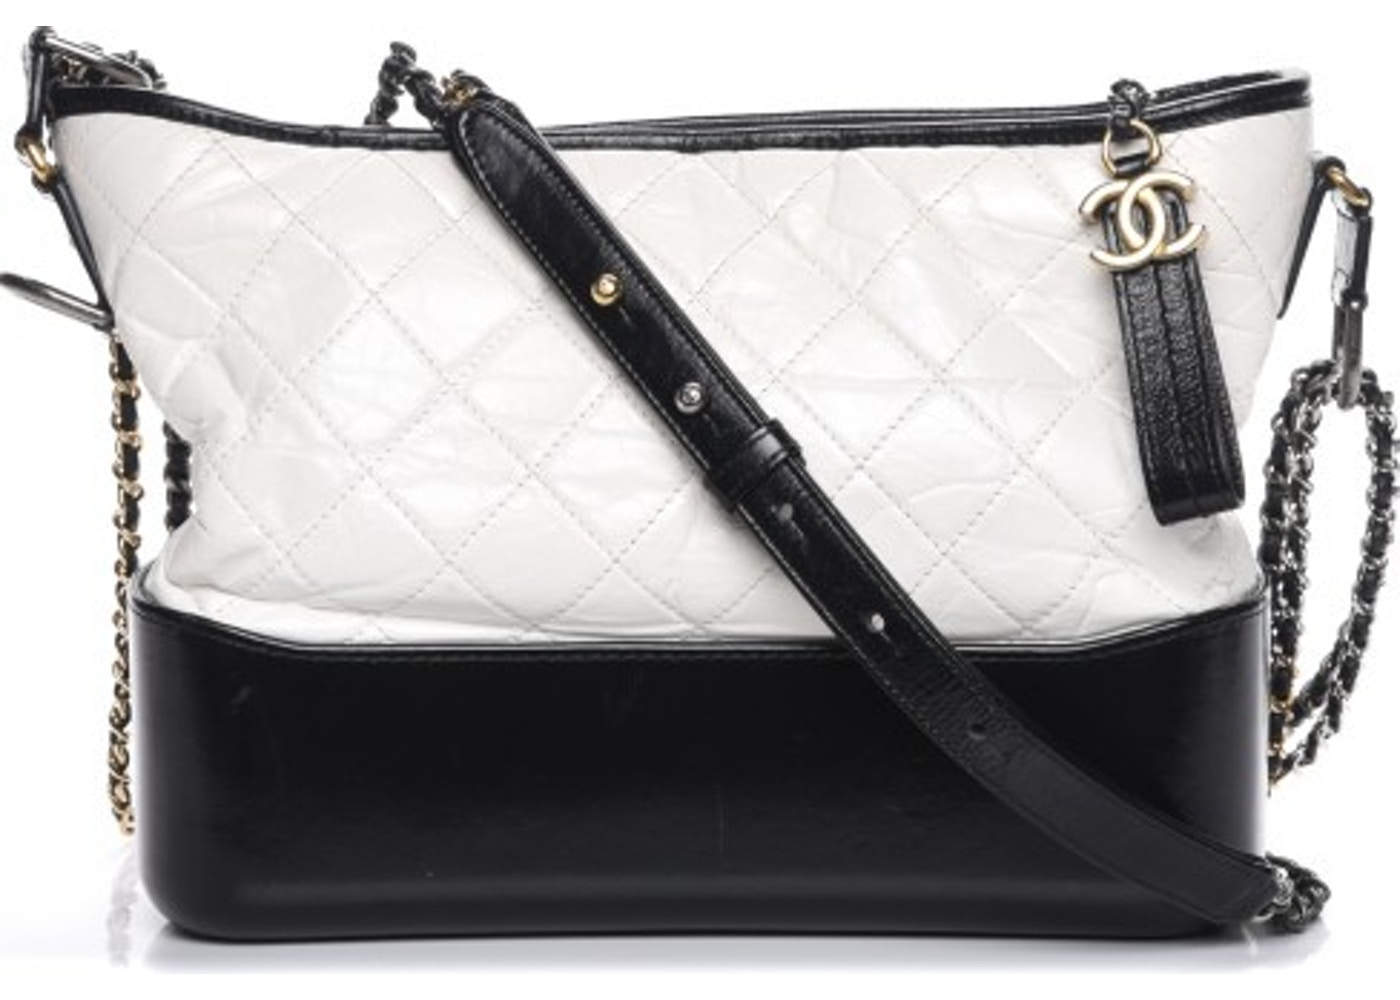 b65dca087e3e Chanel Gabrielle Hobo Diamond Gabrielle Quilted Aged/Smooth ...